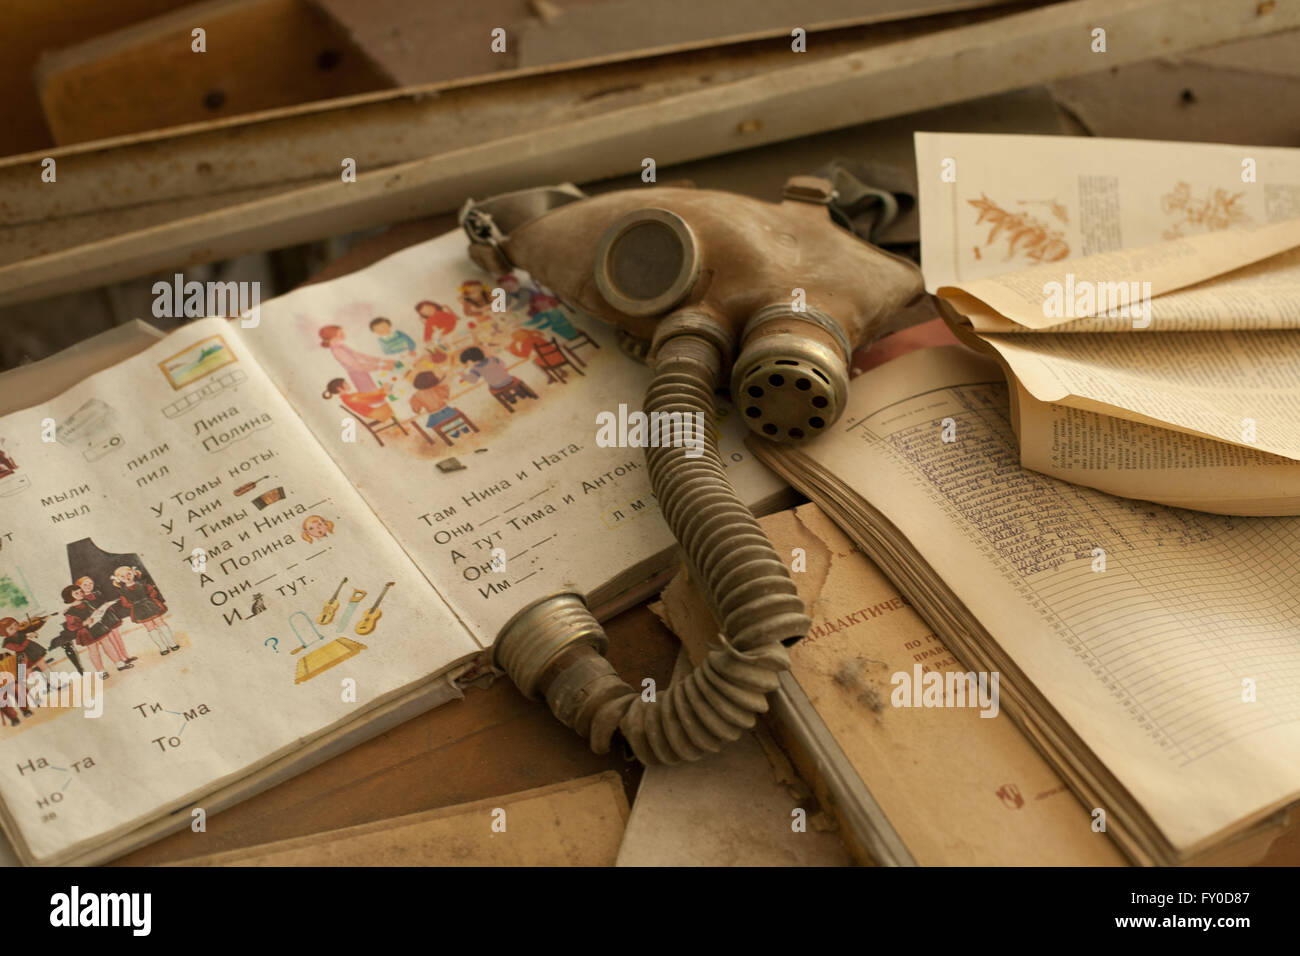 Gas masks in a school in Pripyat, the town next to Chernobyl - Stock Image